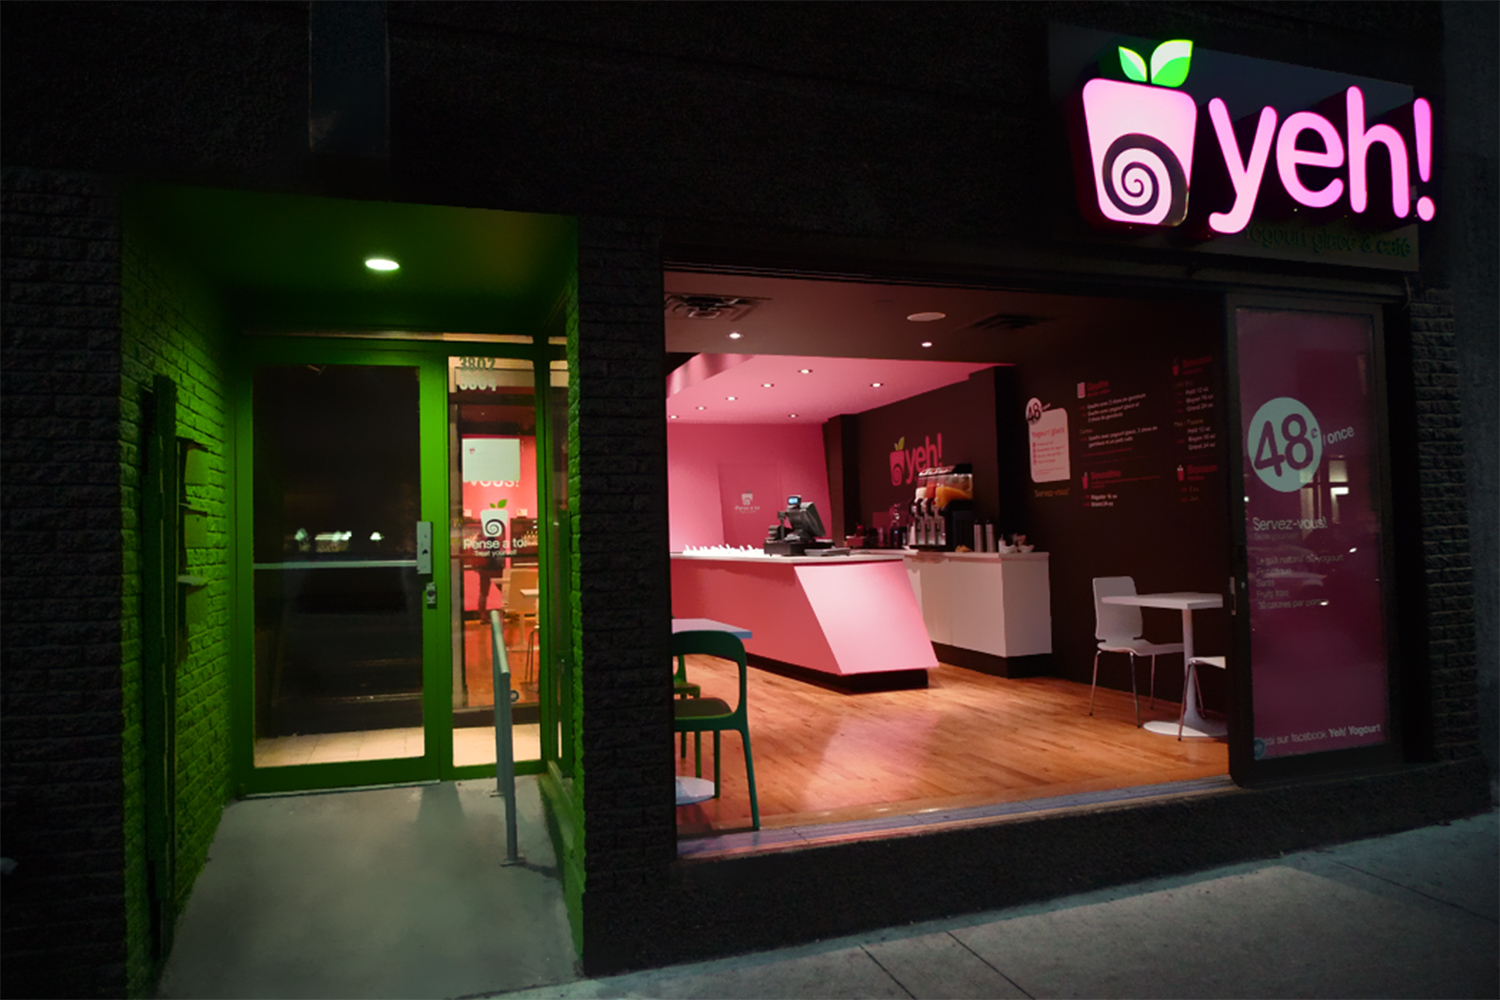 View of the entrance outside the shop on Saint-Laurent Street in Montreal. Brick vault with atypical lighting of green color. The open patio door reveals the interior of the shop